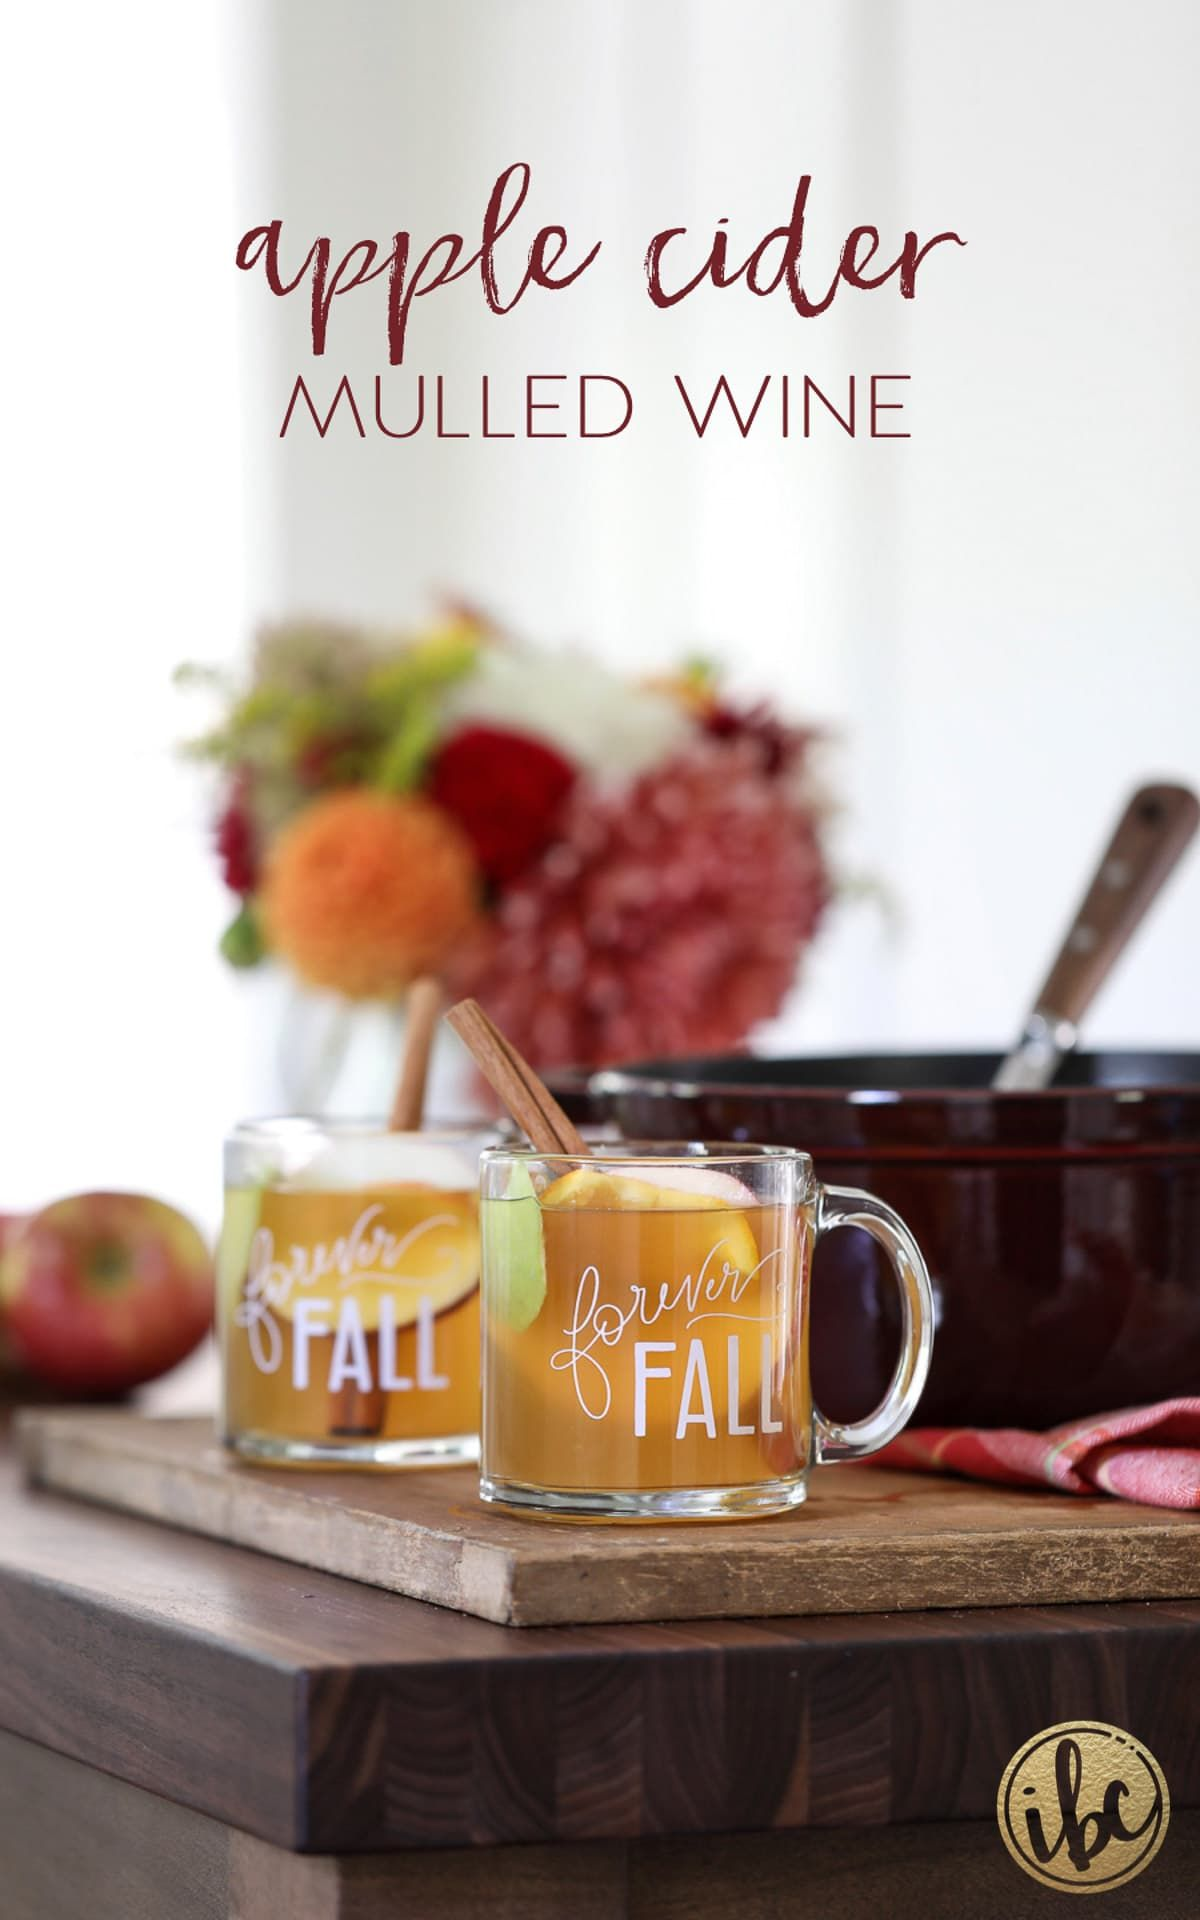 Homemade And Really Good Cider Mulled Wine Apple Cider Mulled Wine Fall Cocktail Recipe Przepisy Kulinarne Przepisy